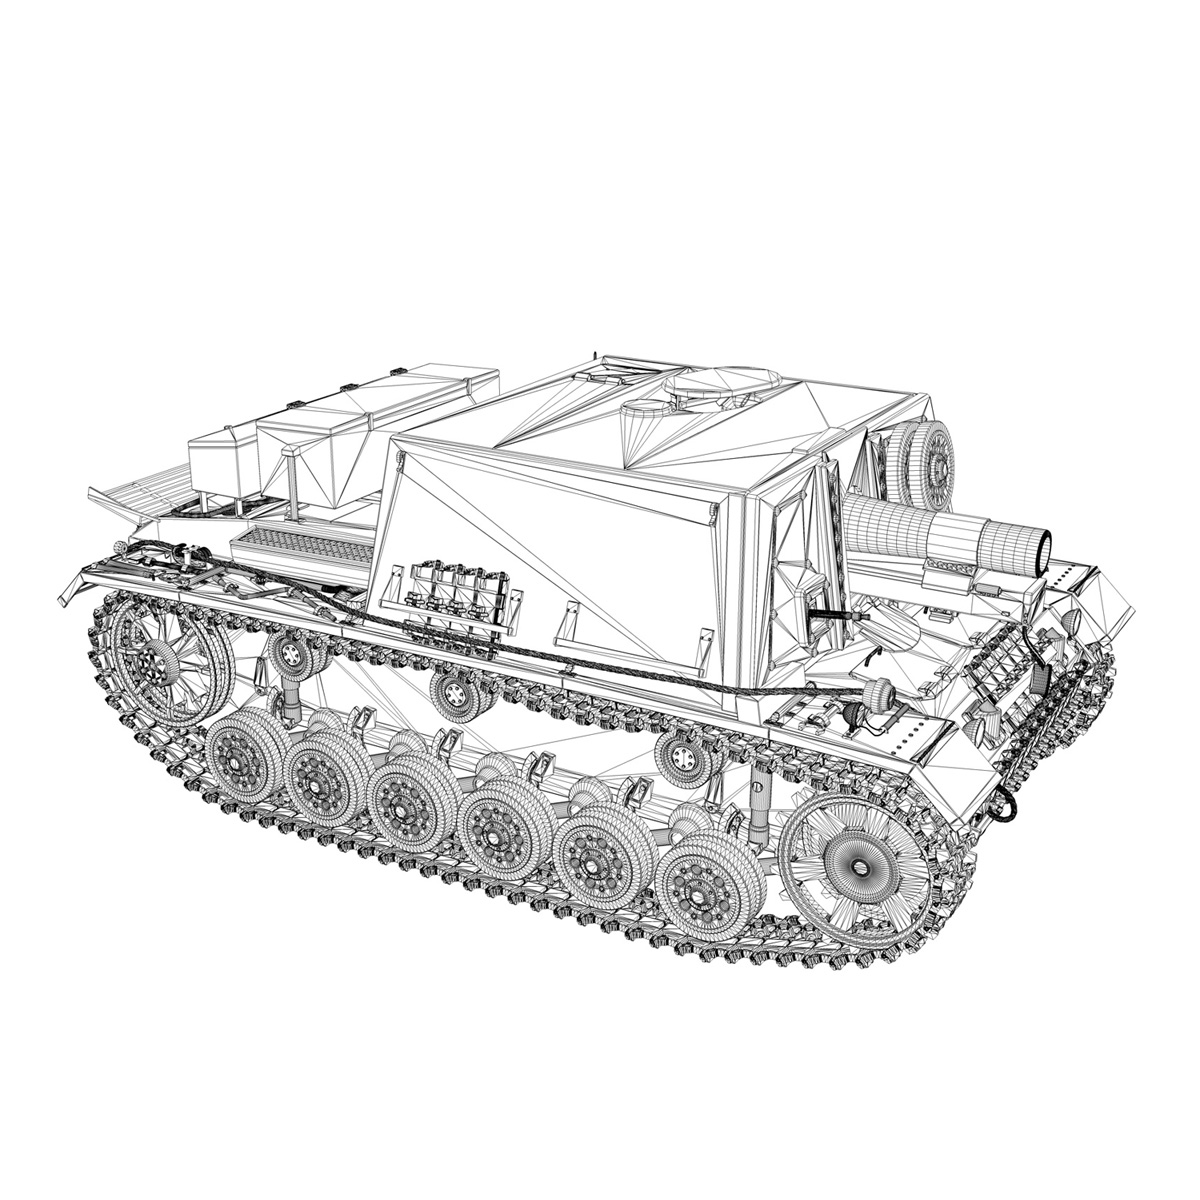 stuig 33b – self-propelled heavy infantry gun 3d model 3ds fbx c4d lwo obj 188847